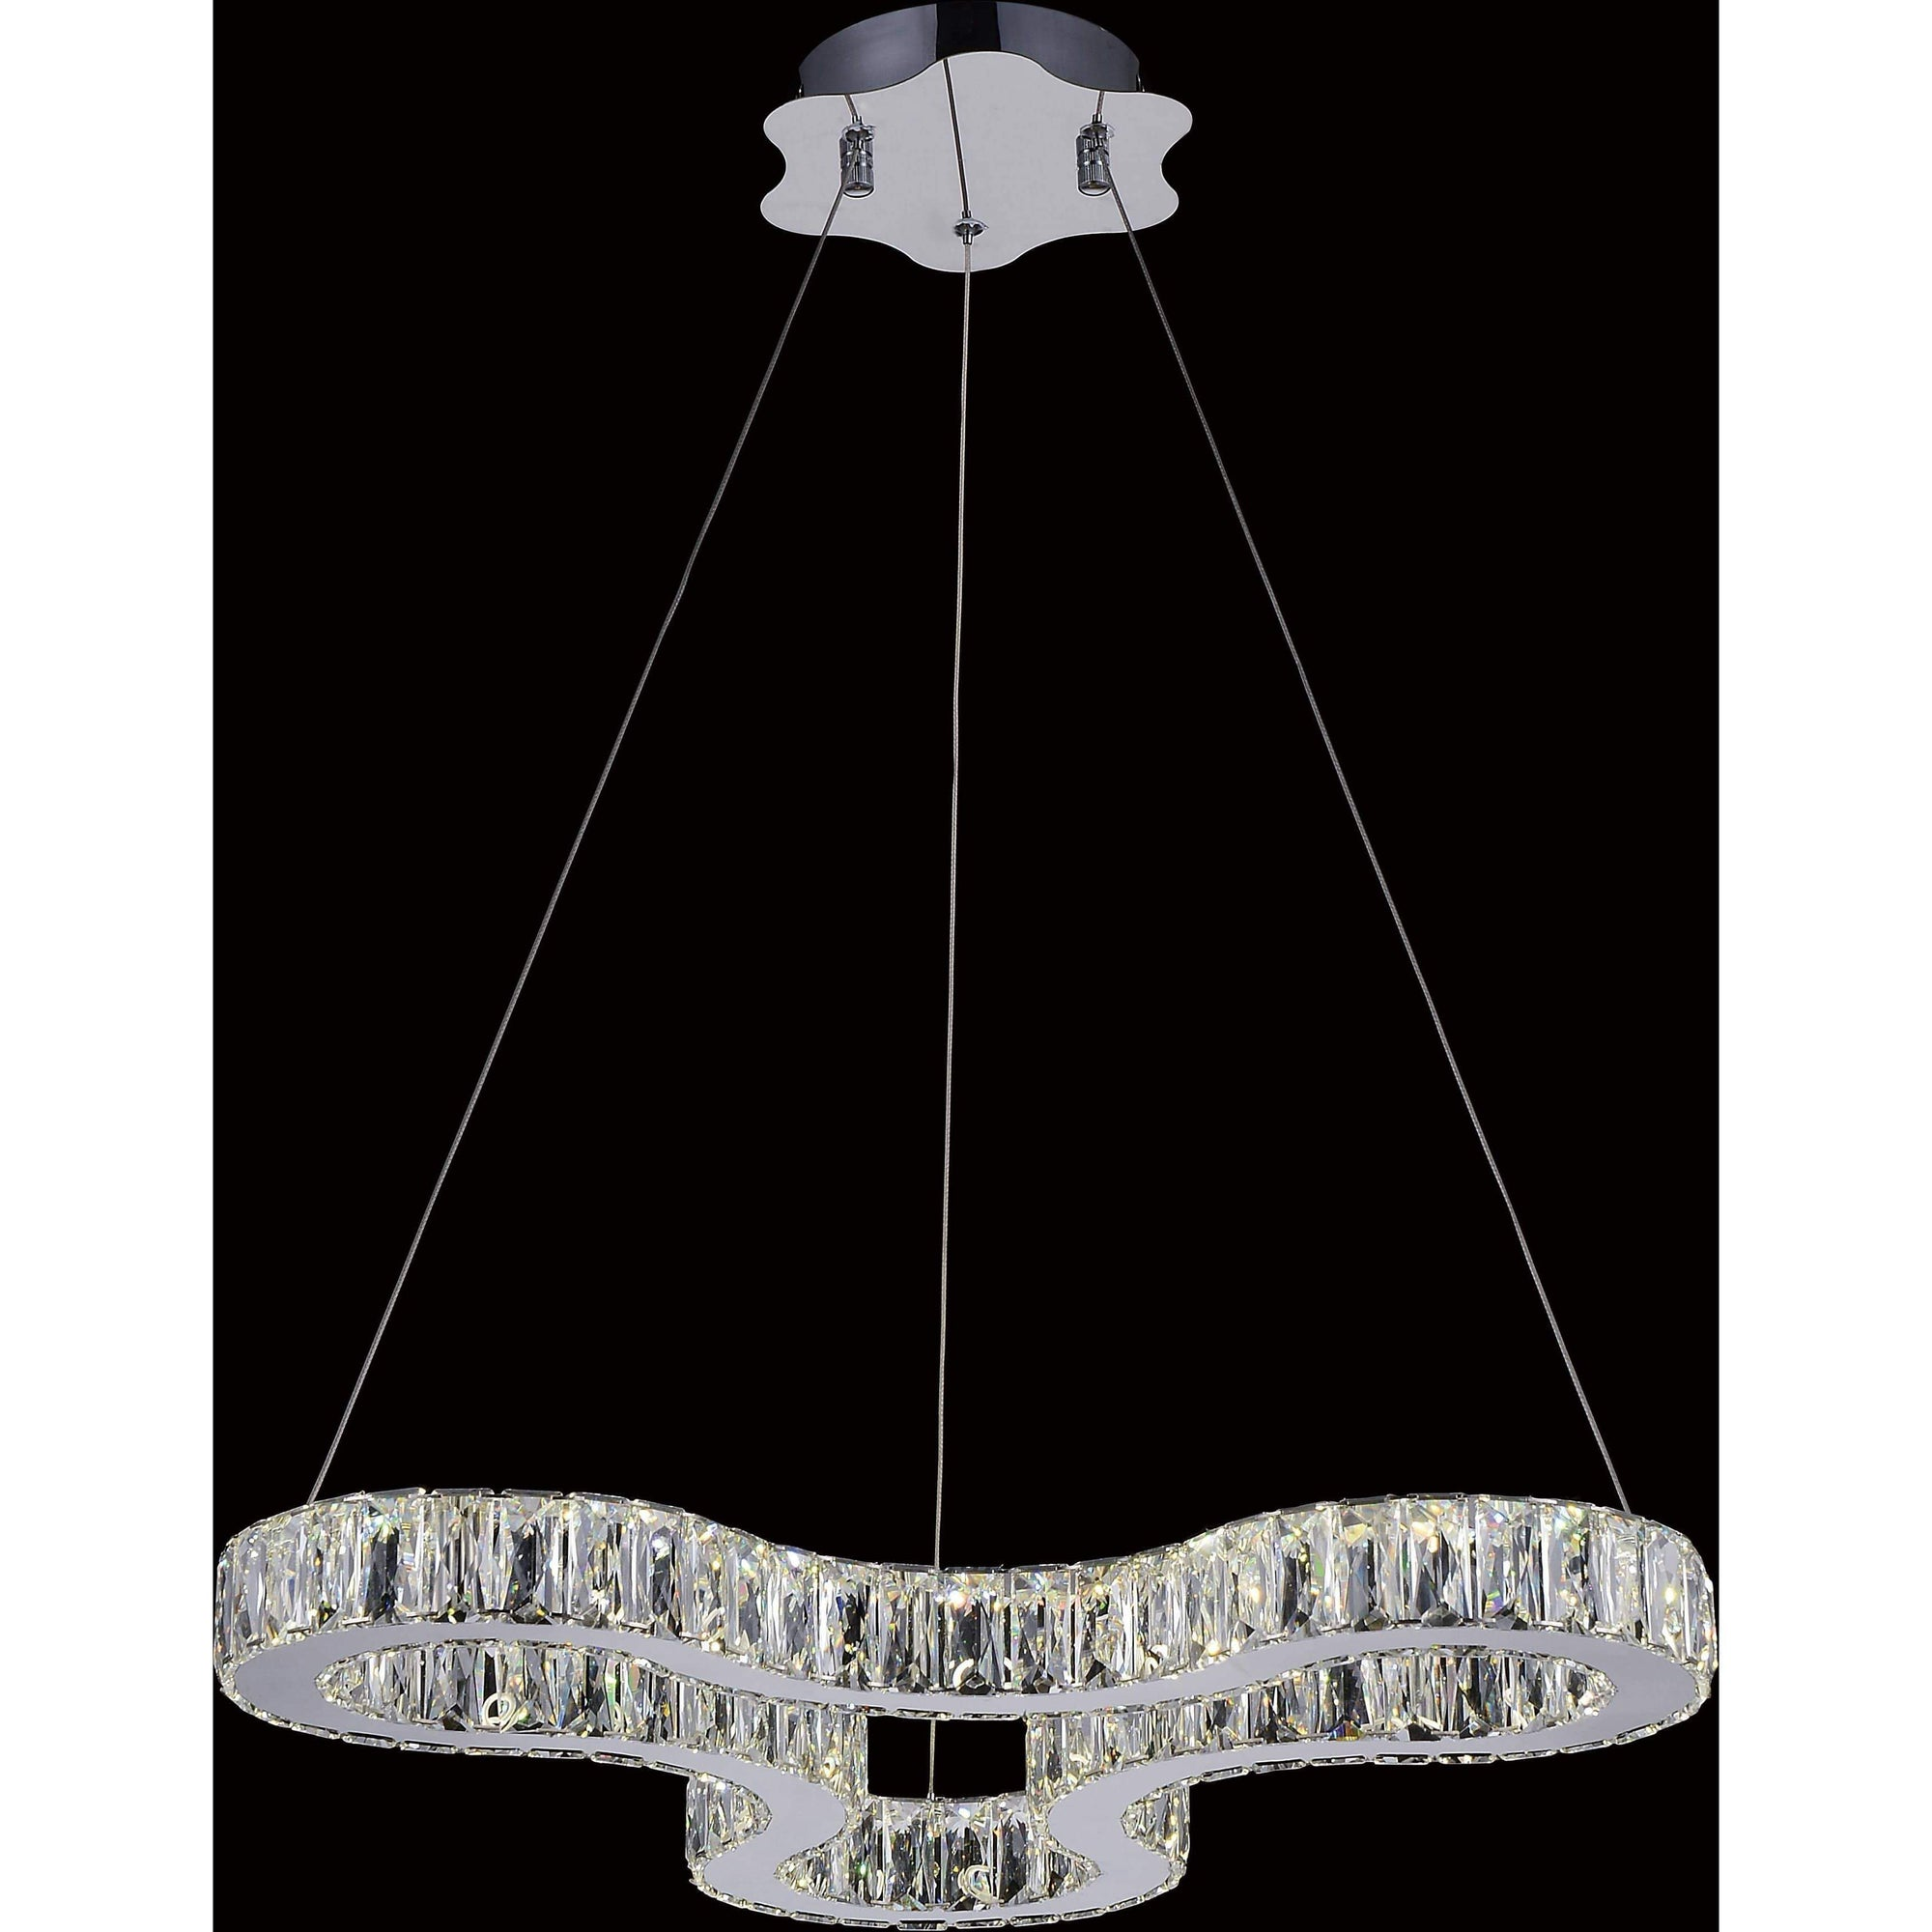 CWI Lighting Chandeliers Chrome / K9 Clear Odessa LED Chandelier with Chrome finish by CWI Lighting 5616P23ST-R